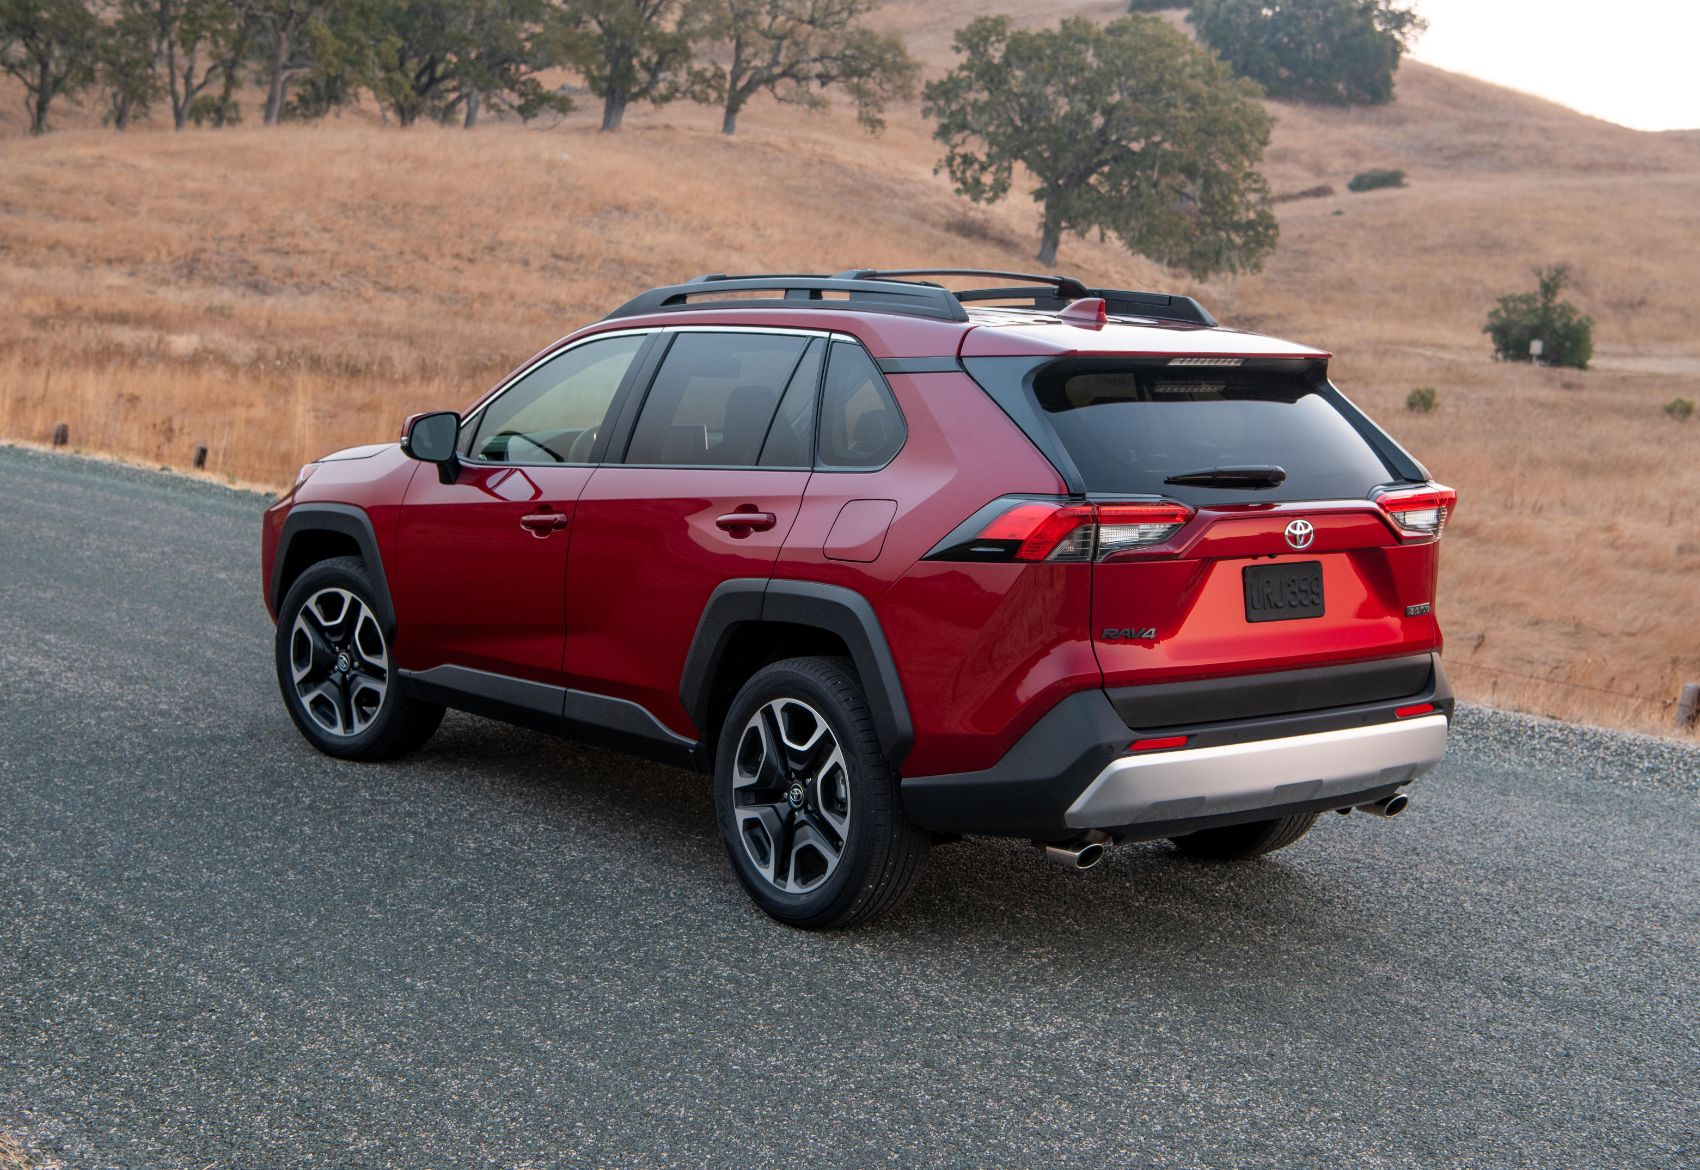 New Toyota Tacoma >> 2019 Toyota RAV4 Adventure Review: Just Functional Enough